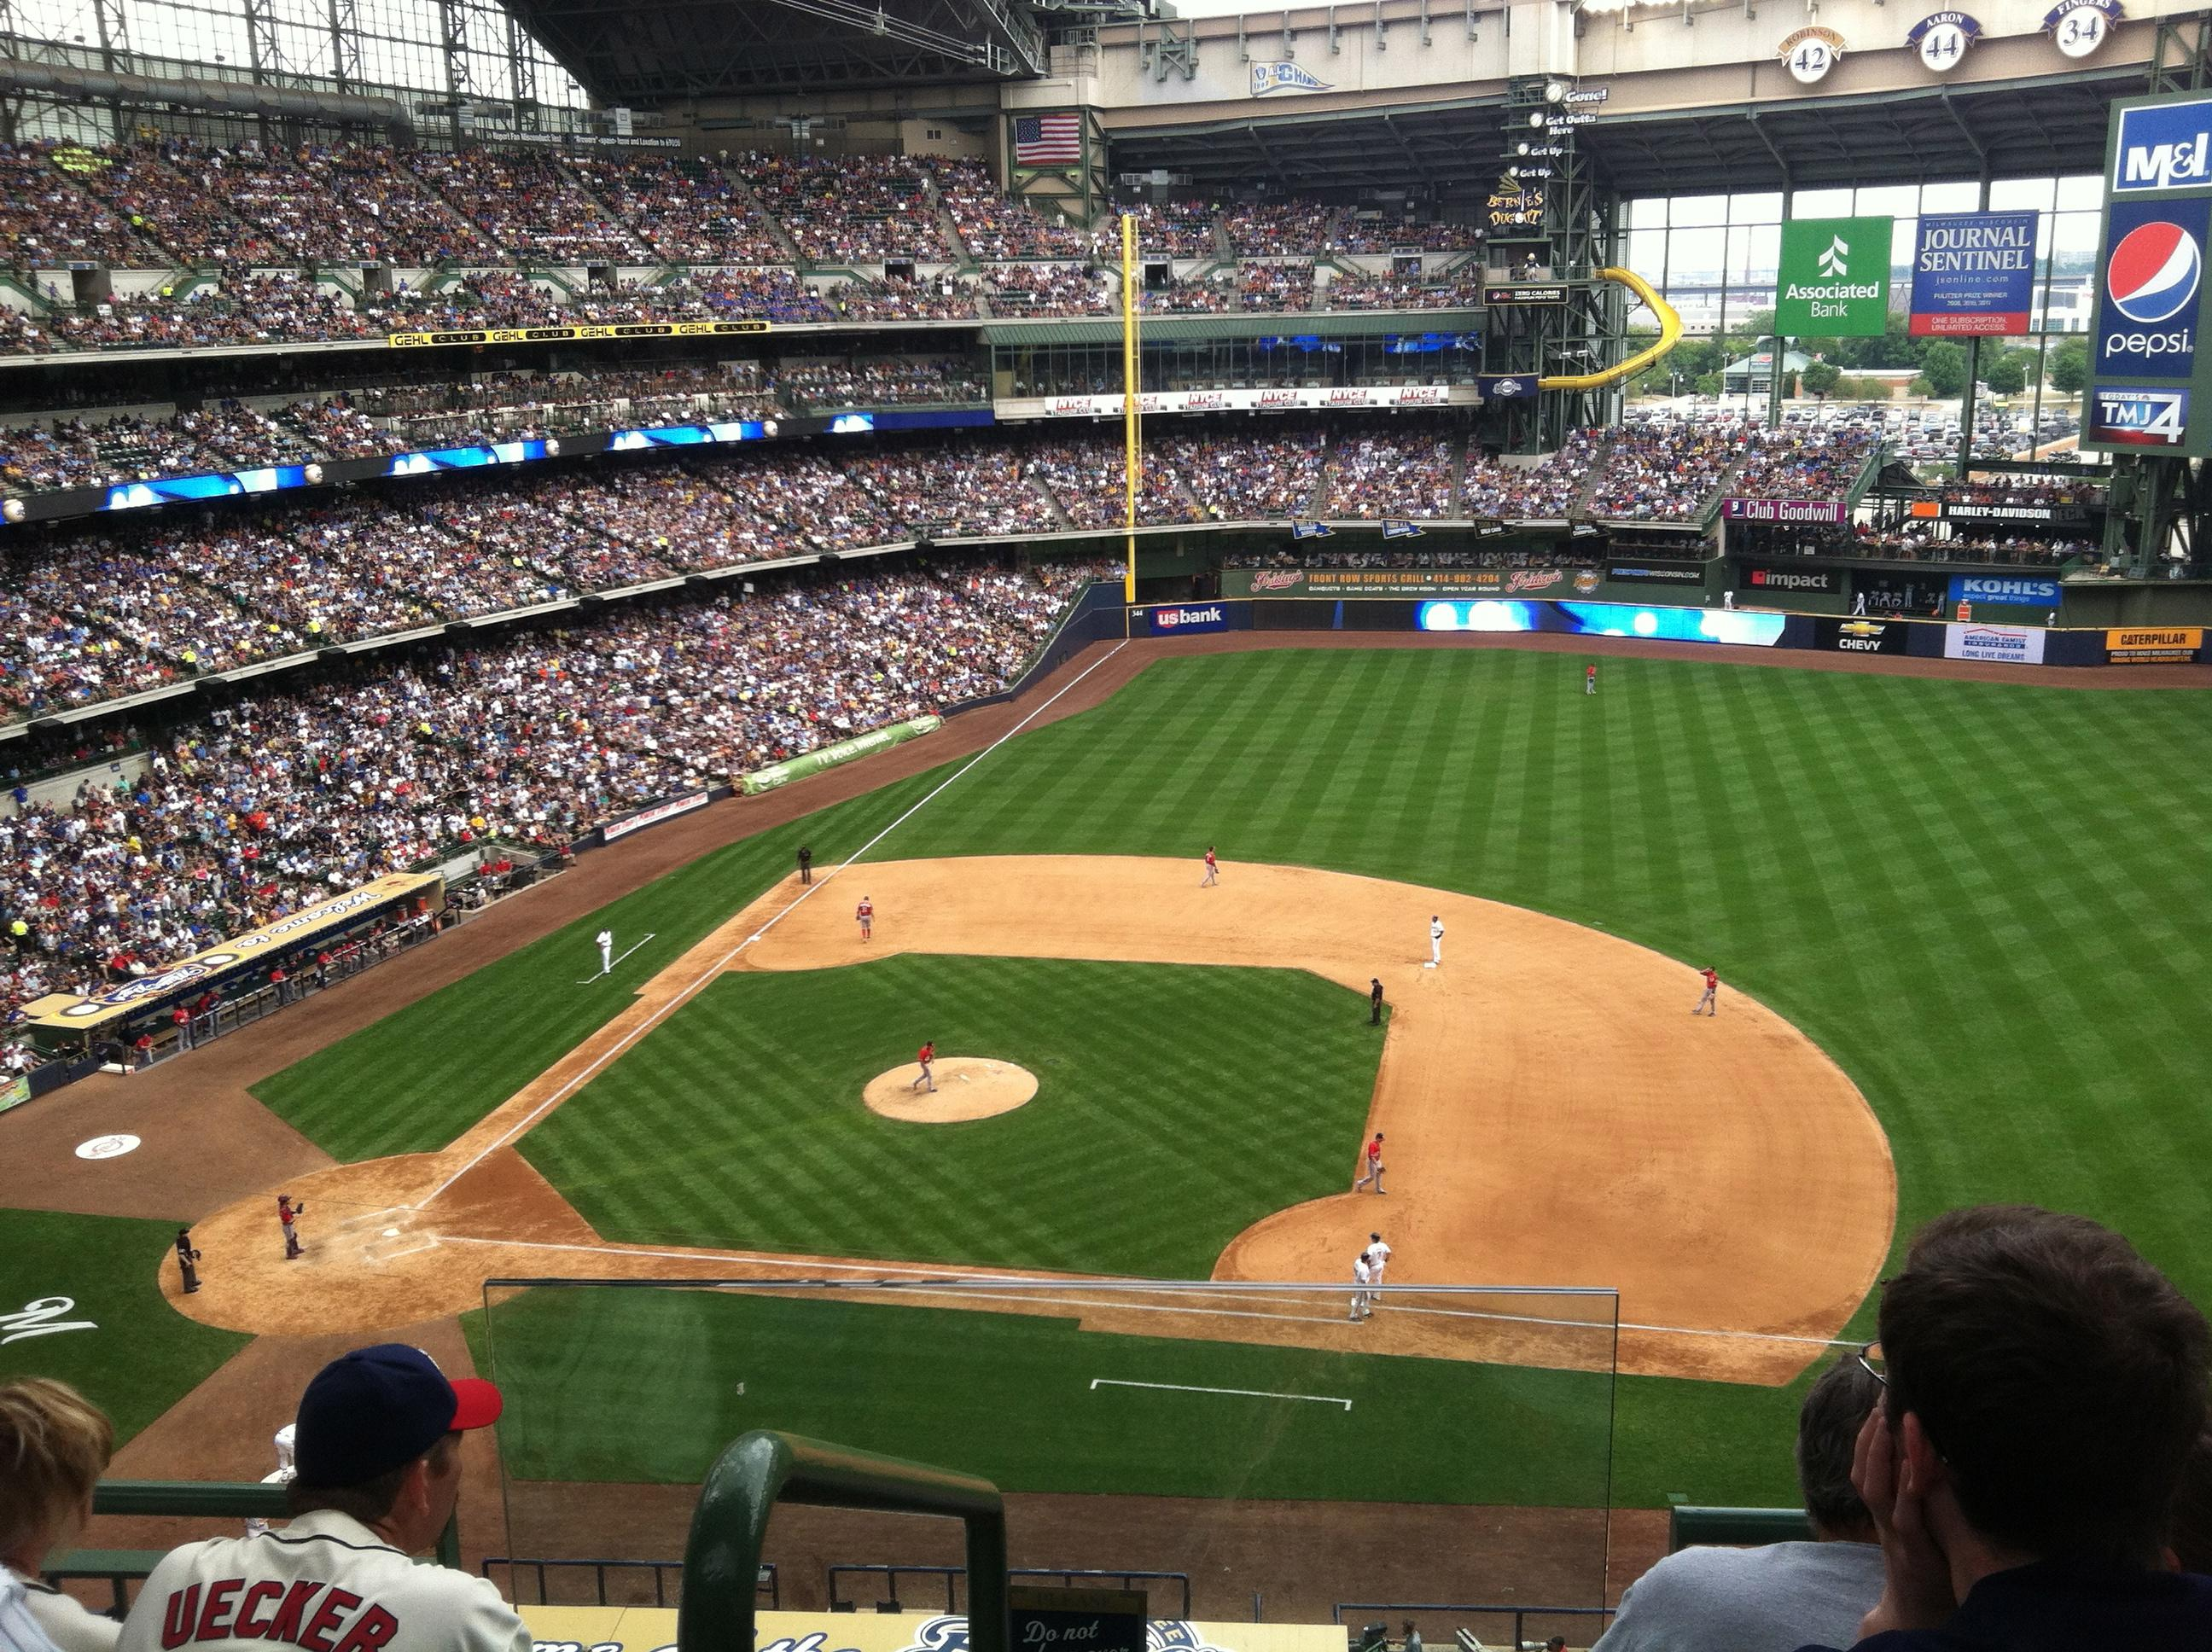 Miller Park Section 413 Row 4 Seat 13